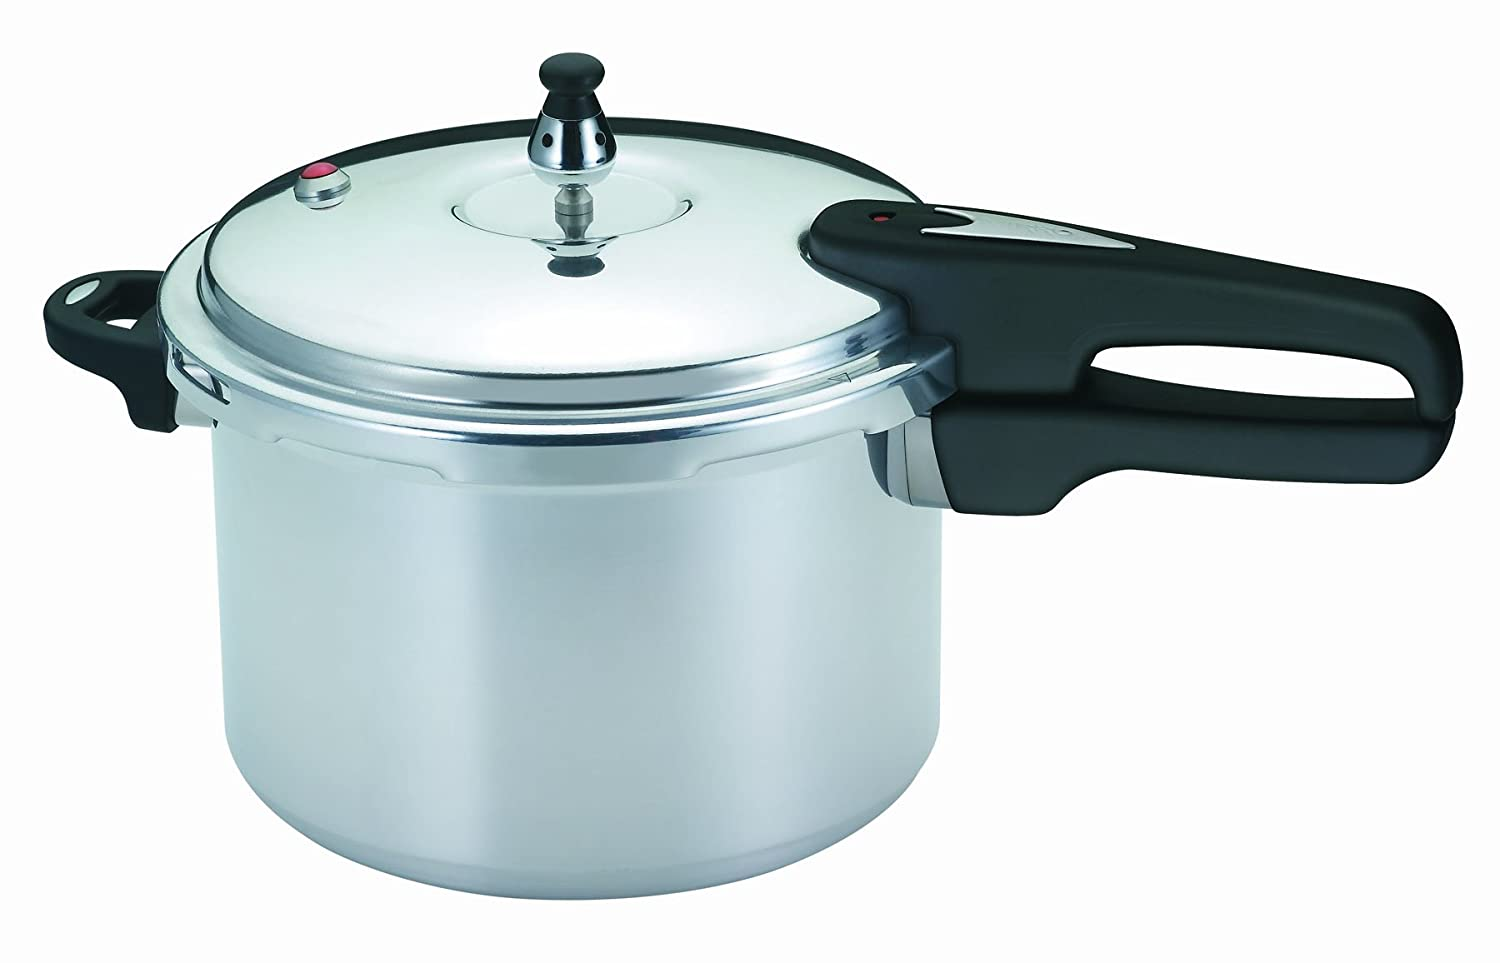 Mirro 92160A Polished Aluminum 10-PSI Pressure Cooker Cookware, 6-Quart, Silver